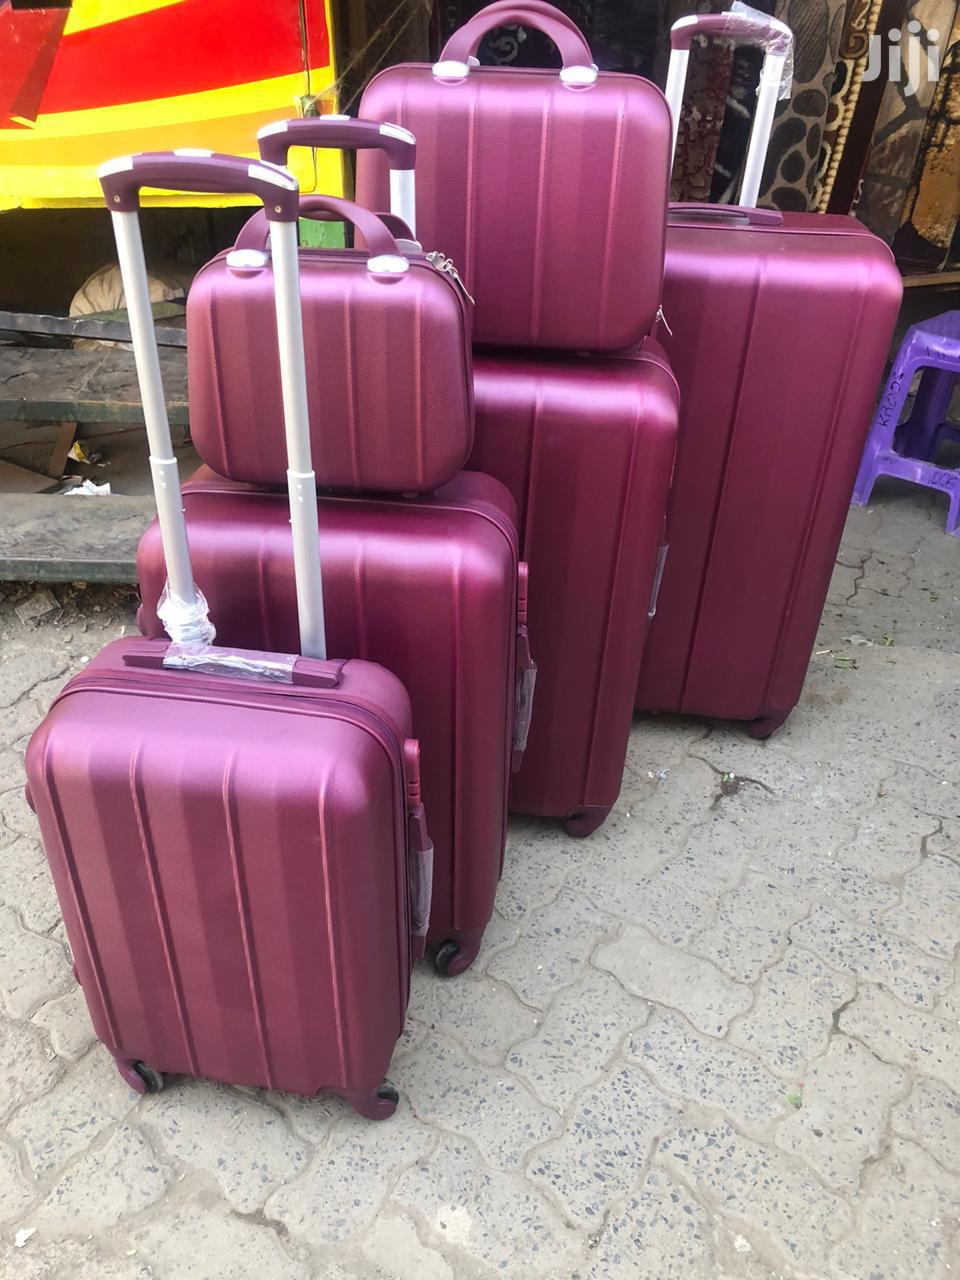 6 Pcs Luggage Suitcases